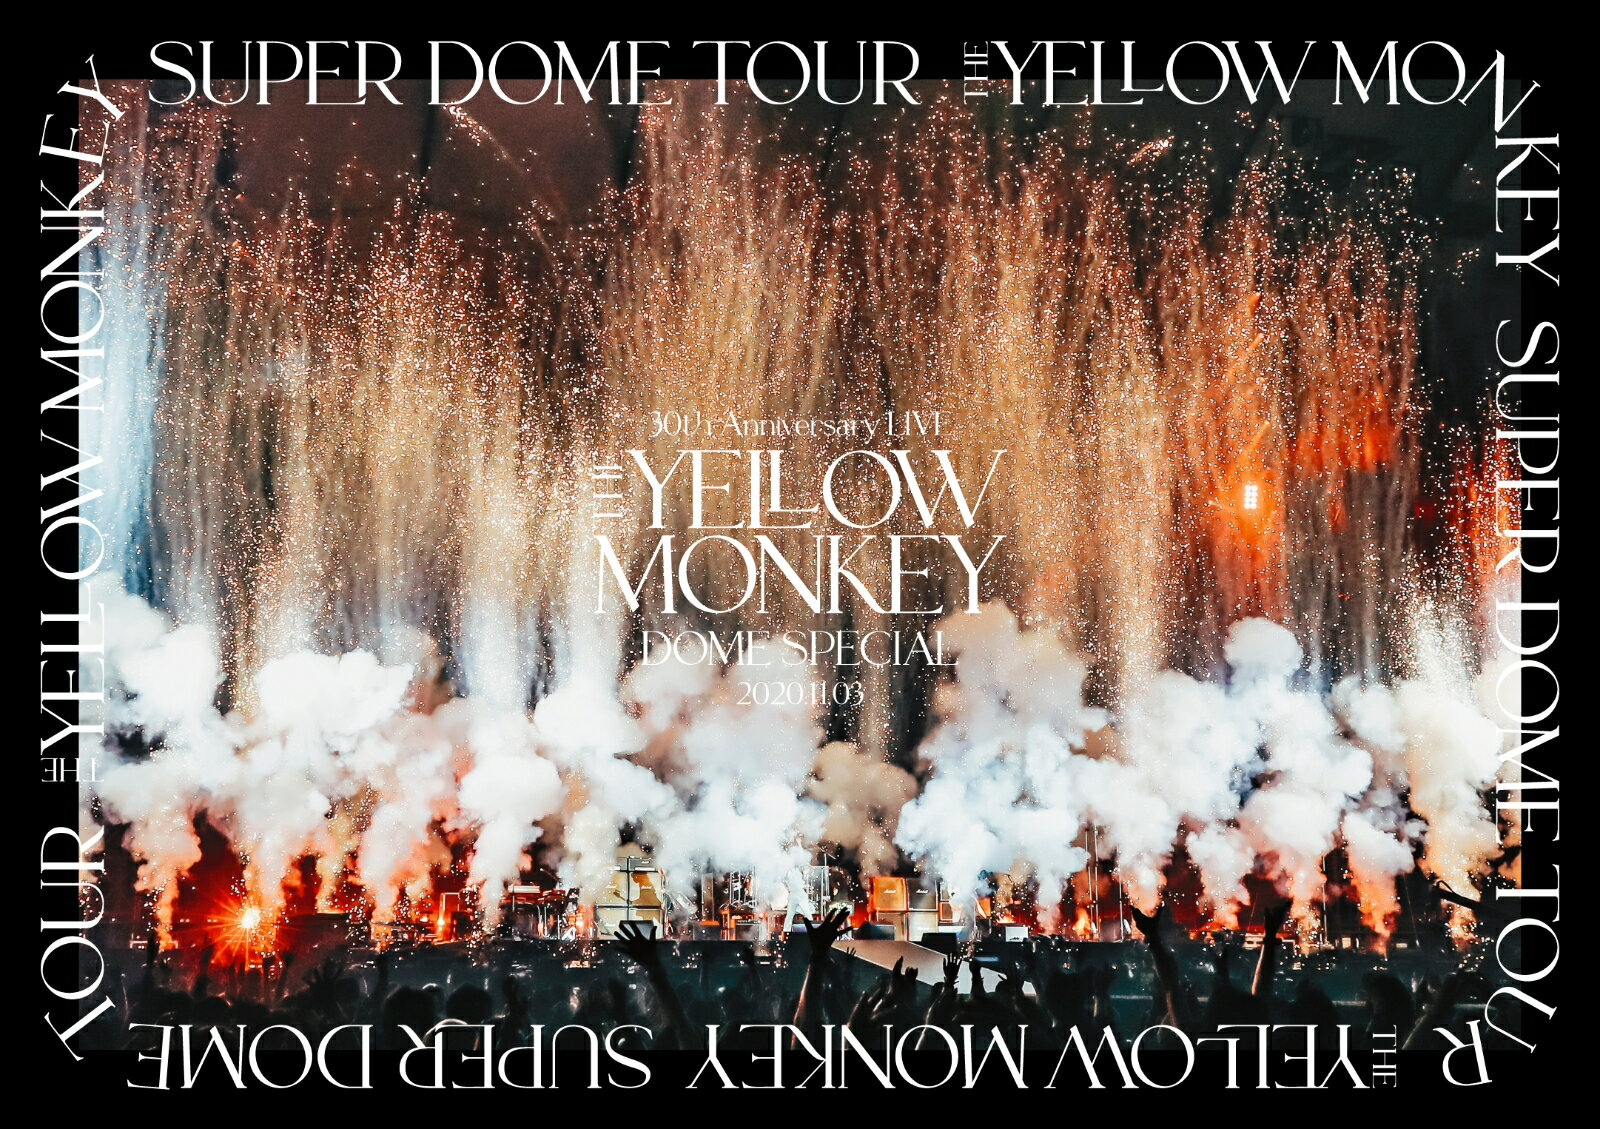 THE YELLOW MONKEY 30th Anniversary LIVE -DOME SPECIAL- 2020.11.3画像